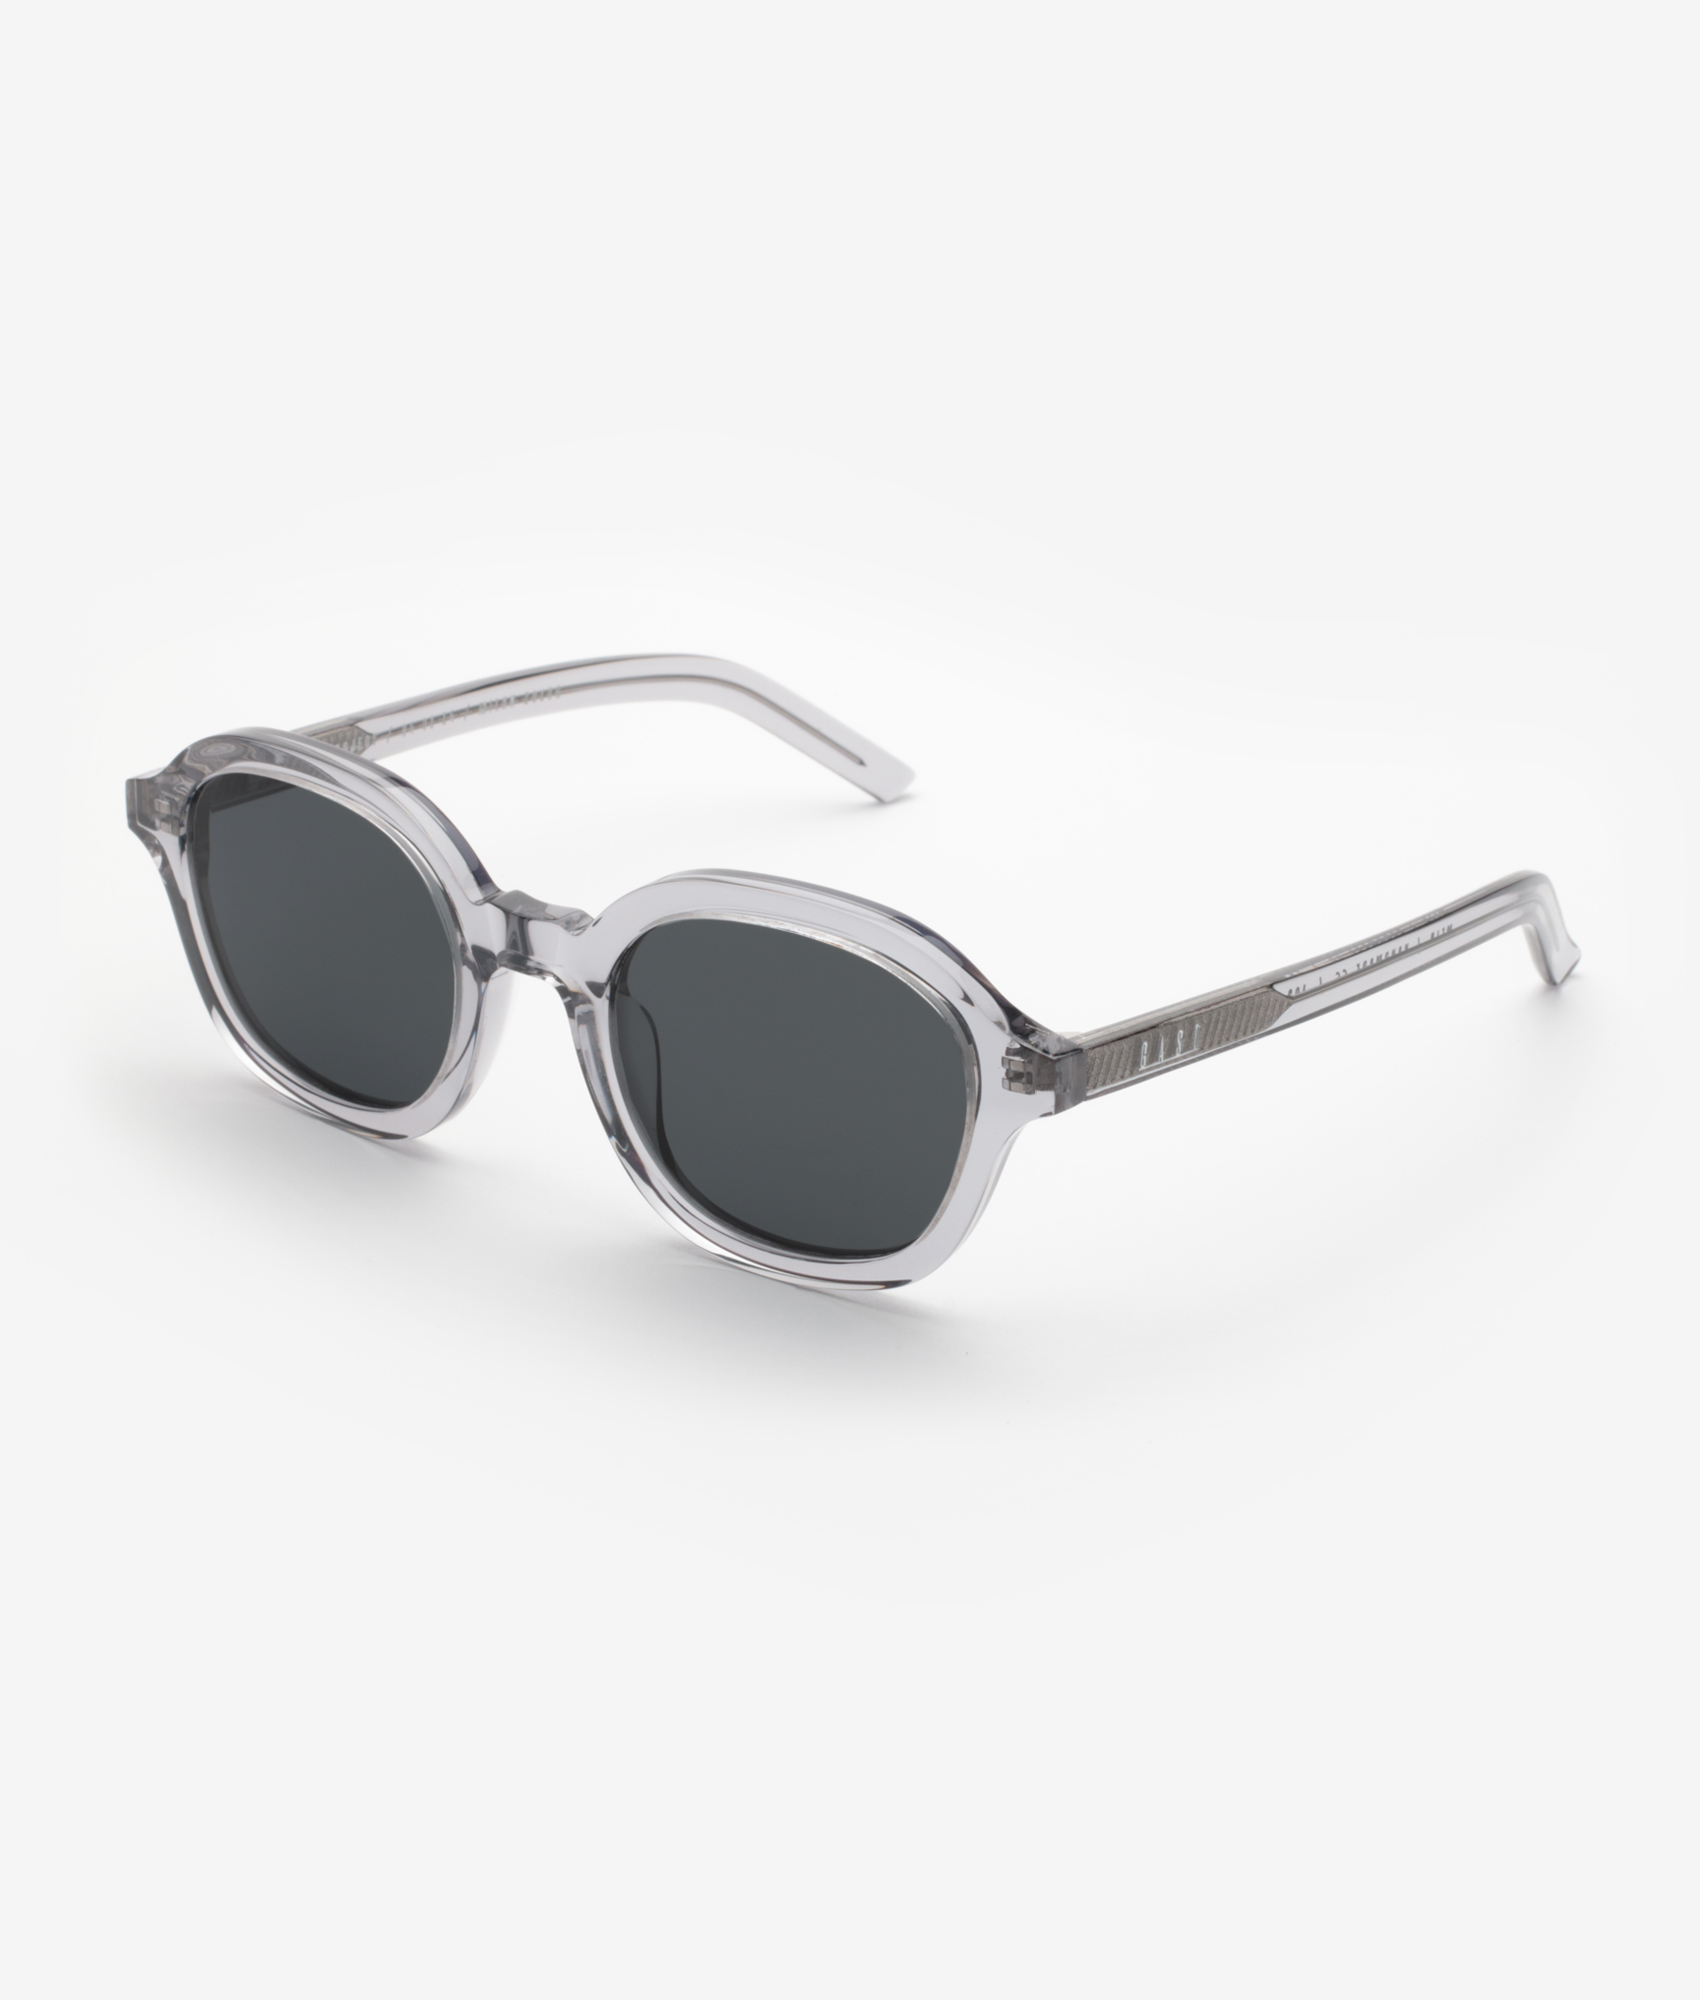 Mein lava grey Gast Sunglasses